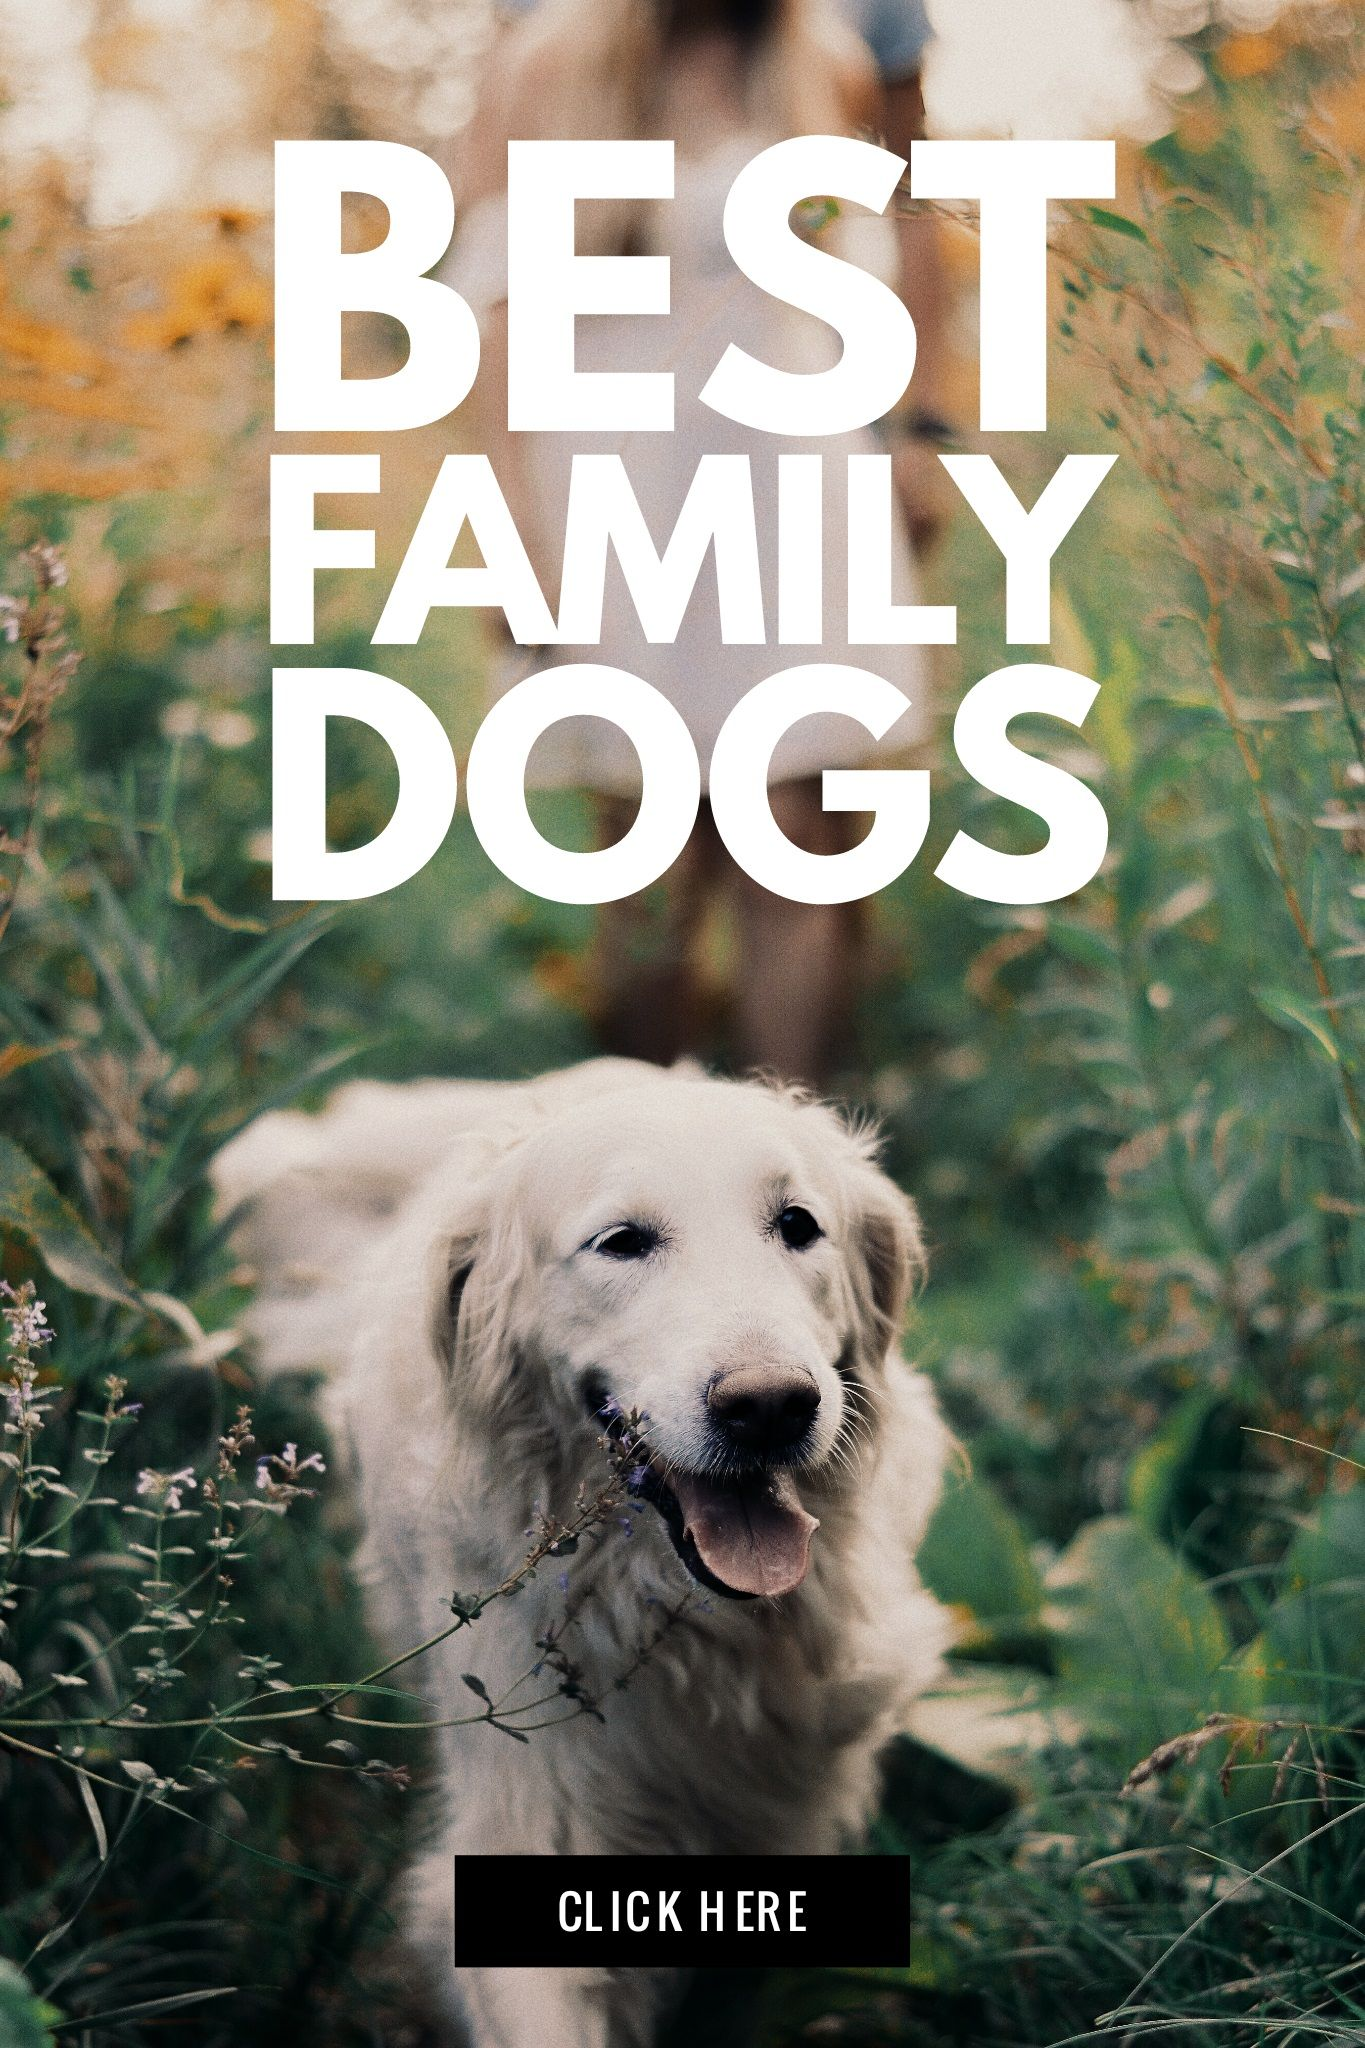 What Are The Best Family Dogs That Don T Shed For Kids For First